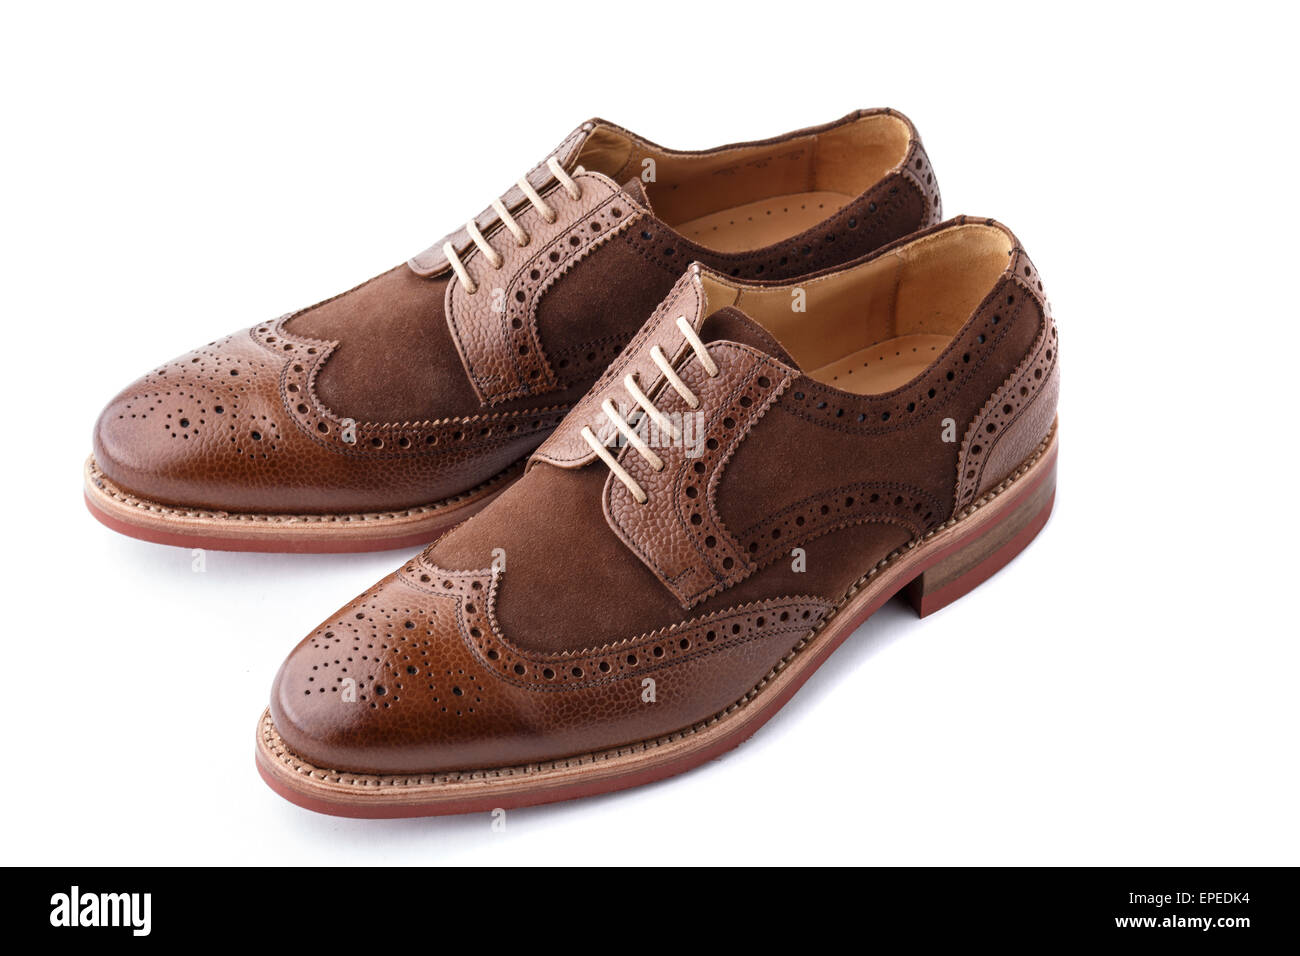 Unworn, laced pair of handcrafted shiny, two tone men brogues (also known as derbys, gibsons or wingtips) on durable - Stock Image